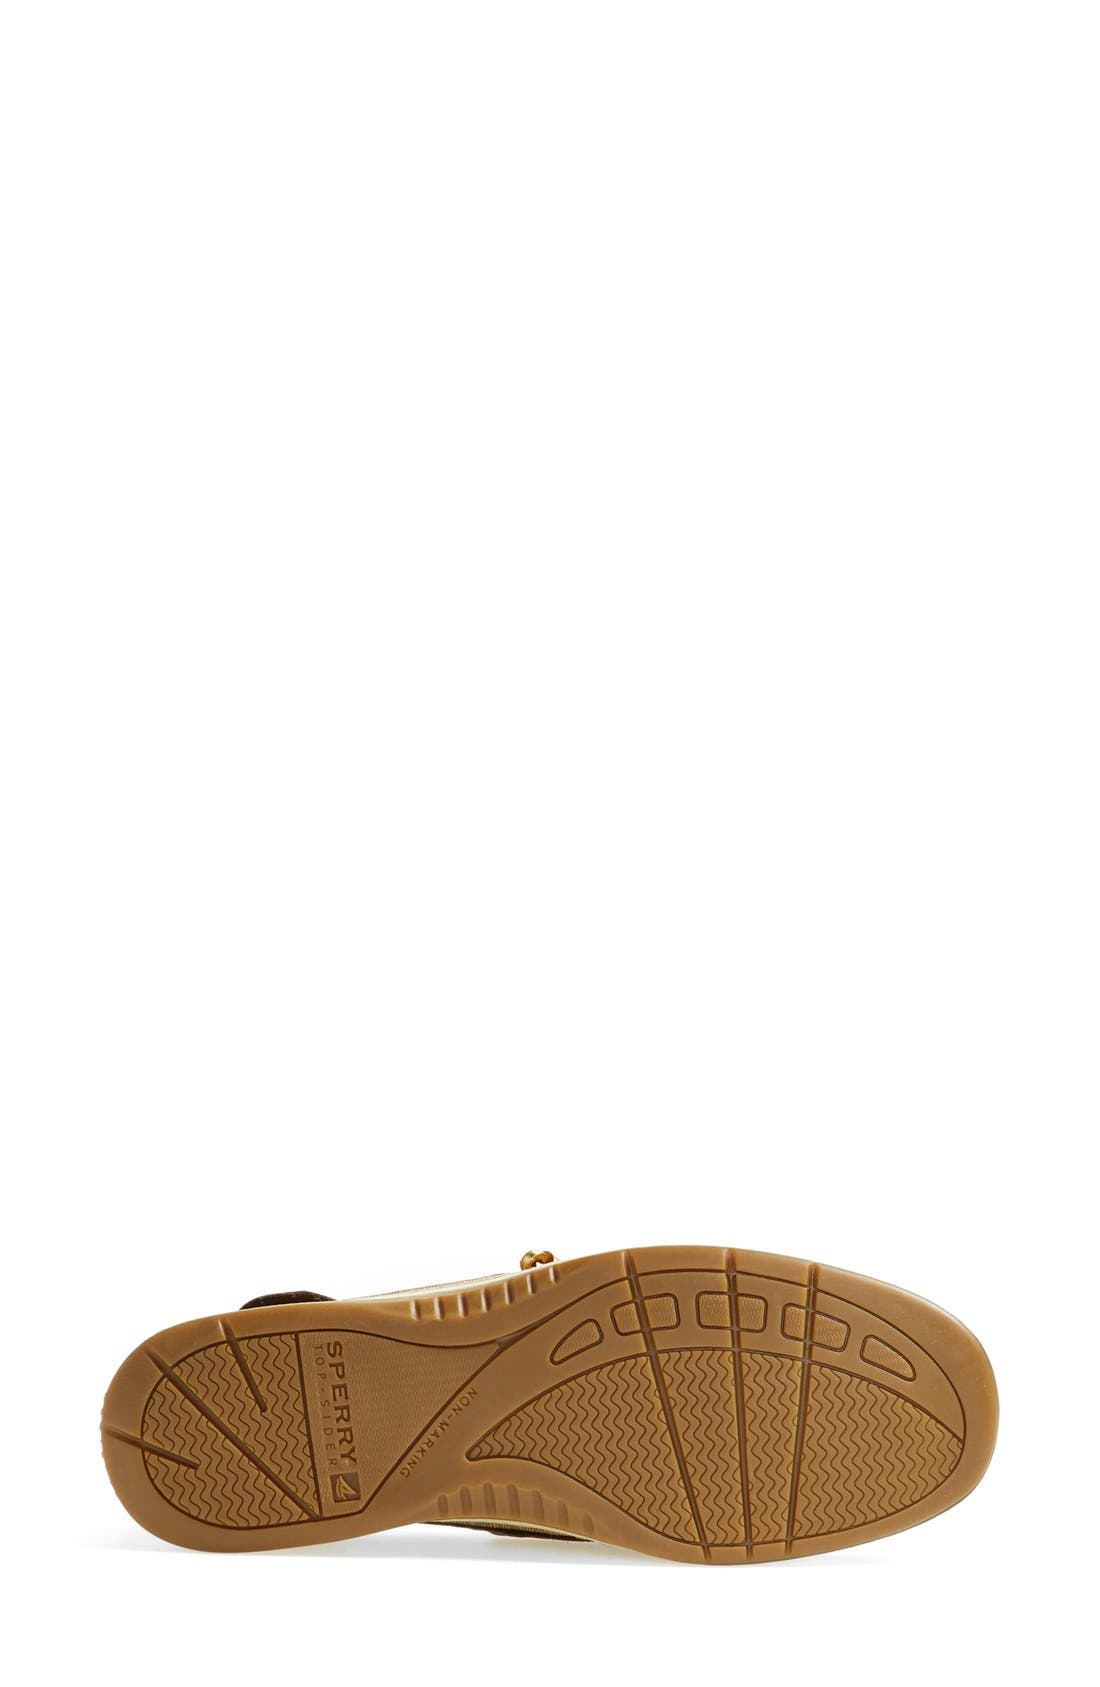 Alternate Image 4  - Sperry Top-Sider® 'Ivyfish' Boat Shoe (Women)